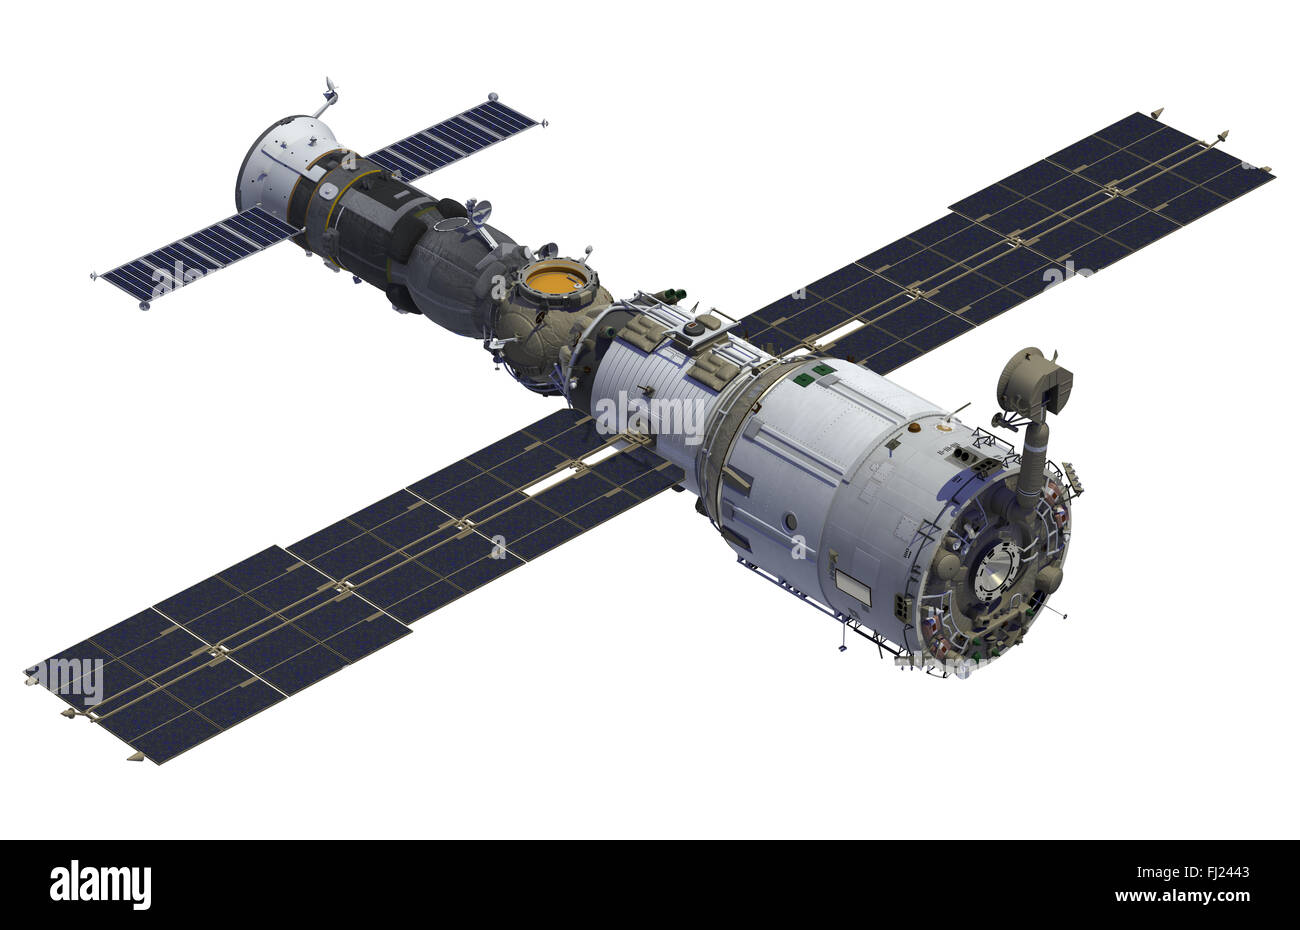 Space Station And Spacecraft On White Background. 3D Model. - Stock Image